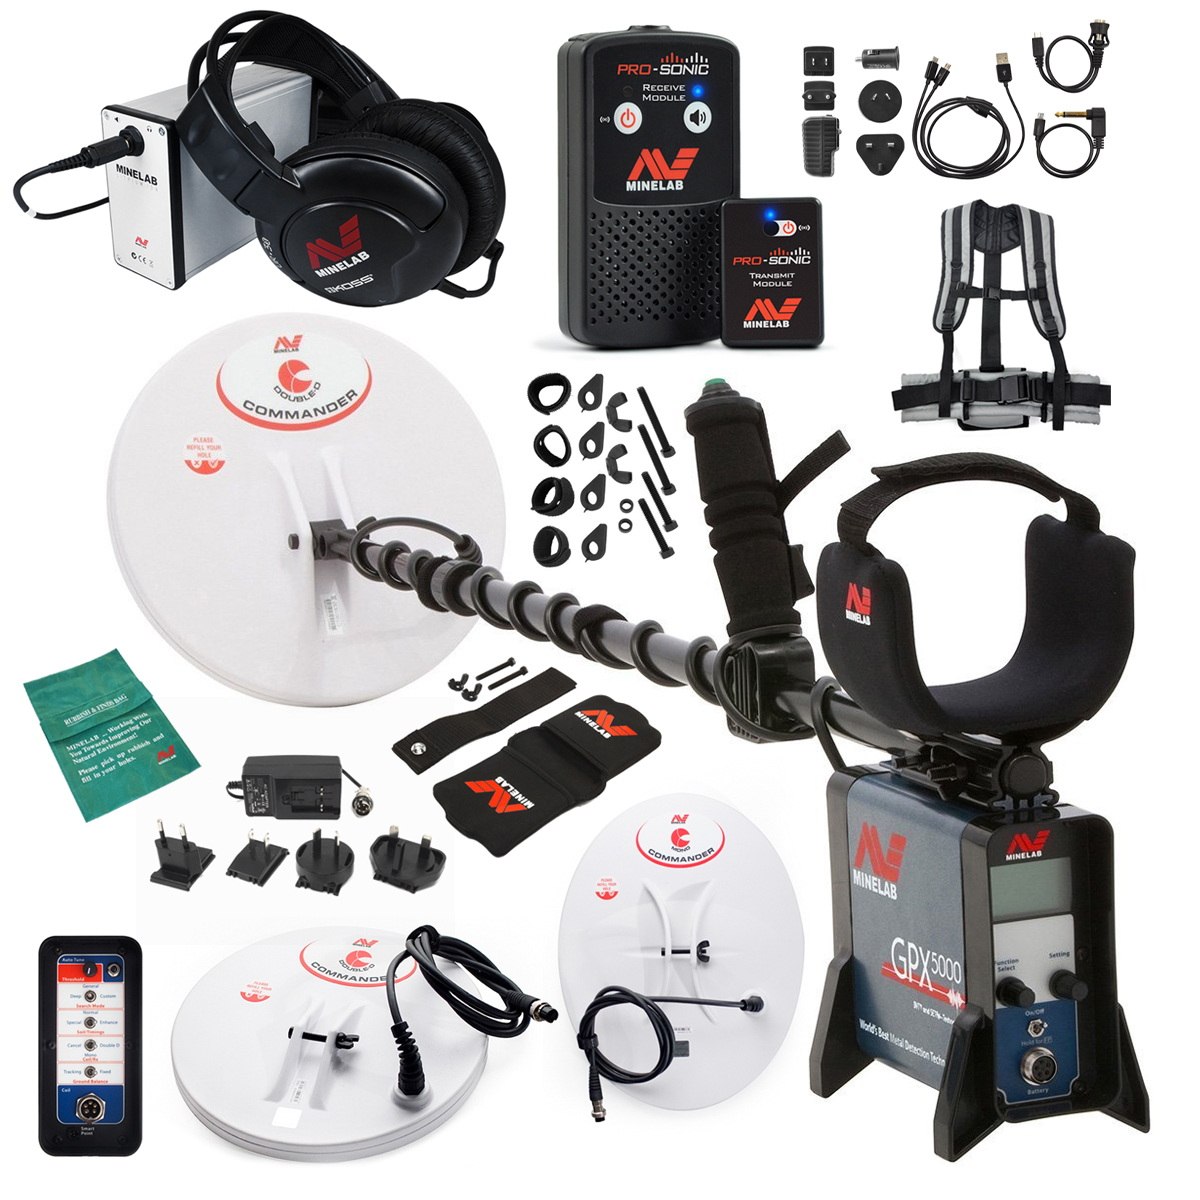 Minelab GPX 5000 Metal Detector Special with PRO-SONIC Wireless Audio System by